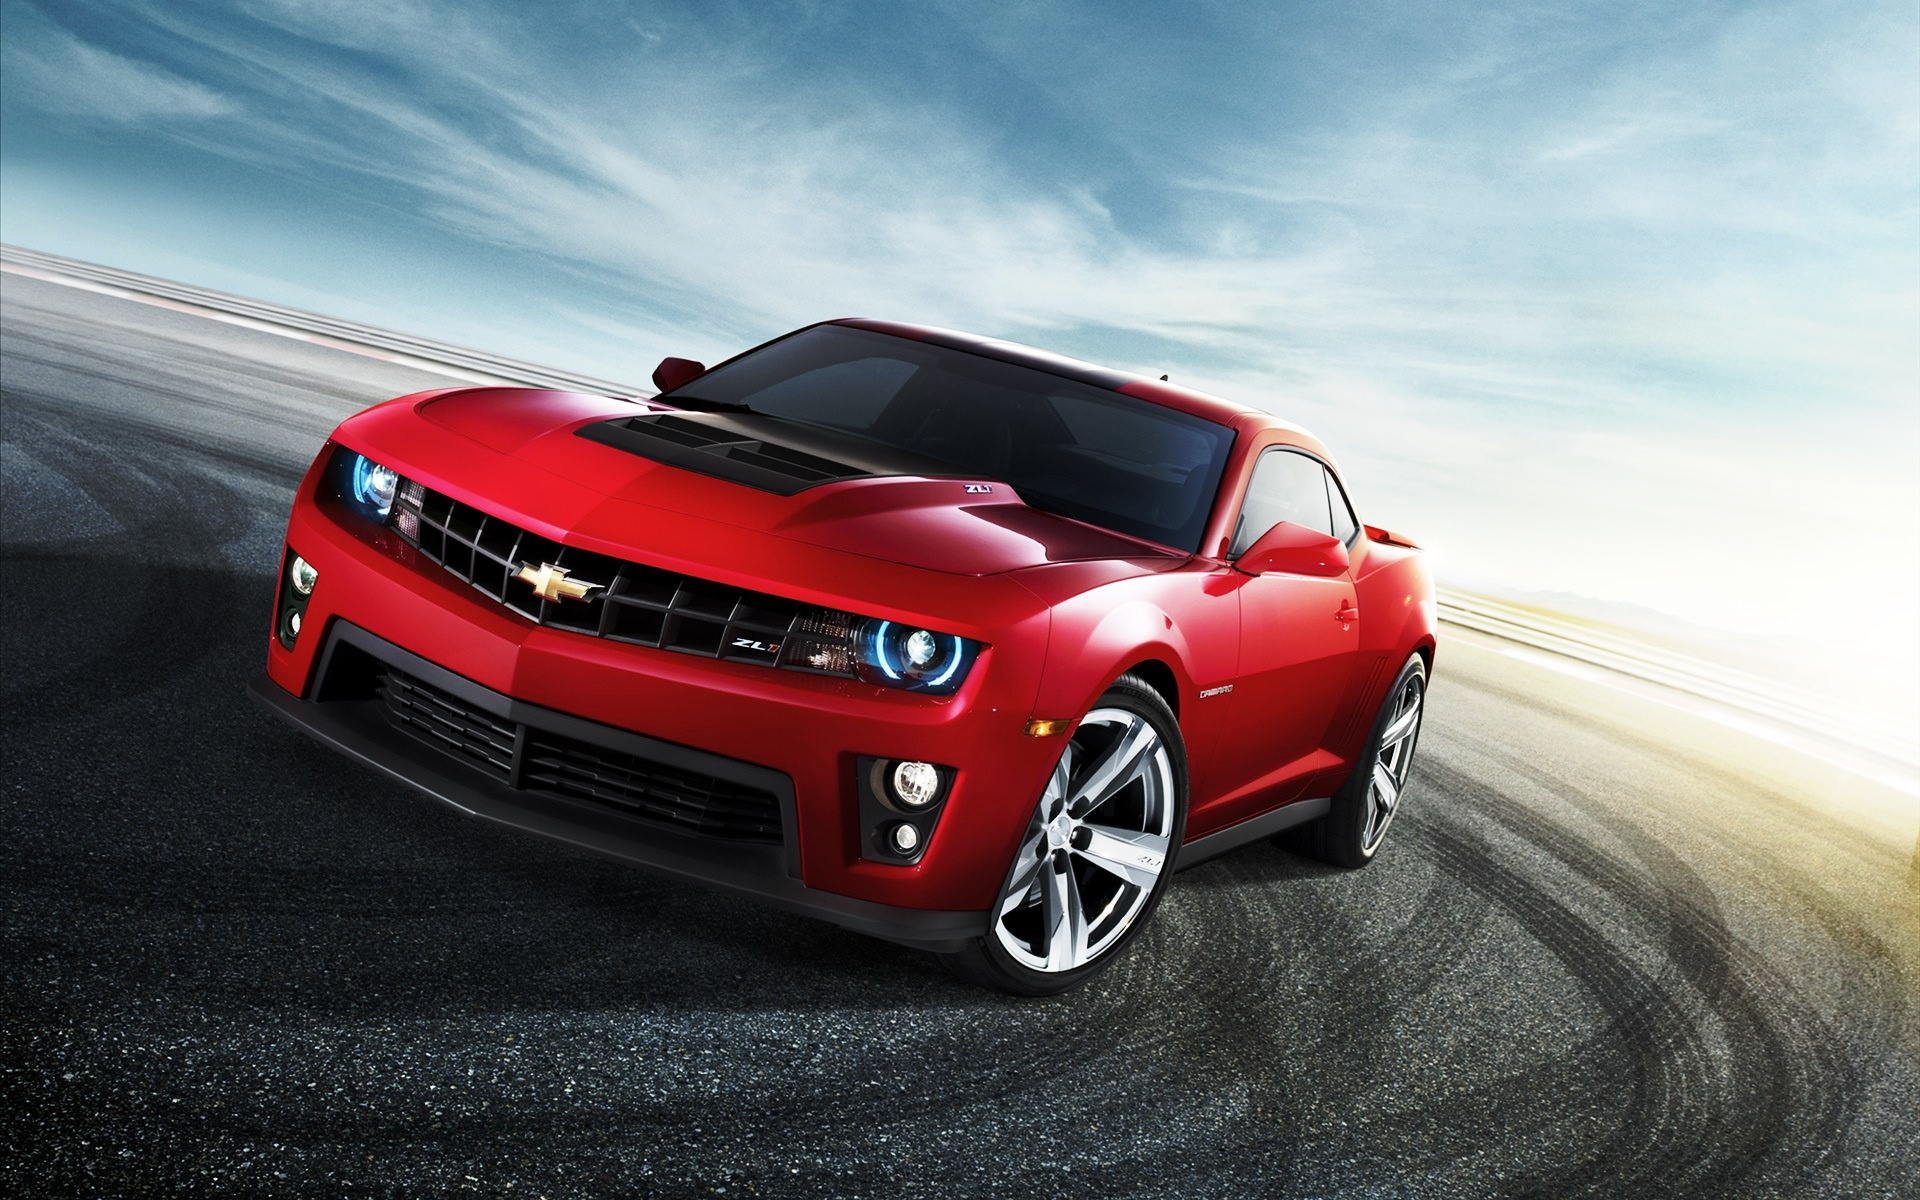 2012 Chevrolet Camaro (click to view)